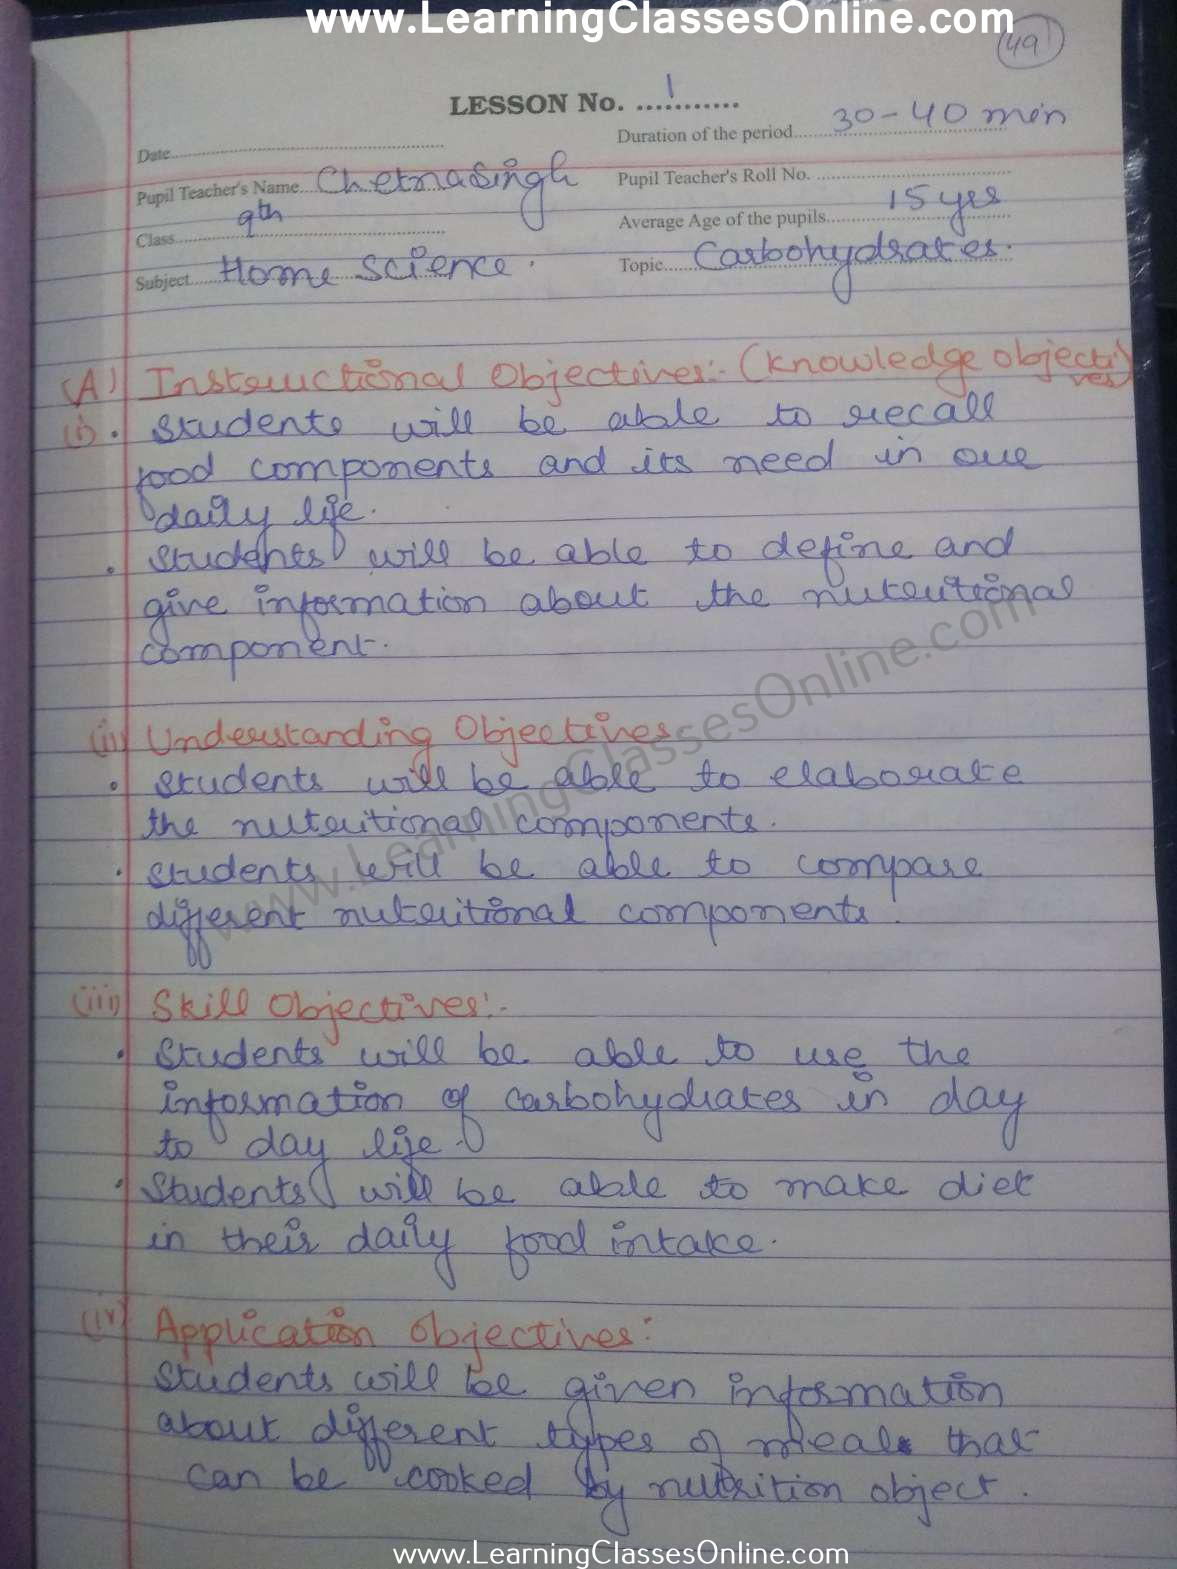 Home Science Discussion Lesson Plan on Carbohydrates for Class 9 in Hindi Free download pdf